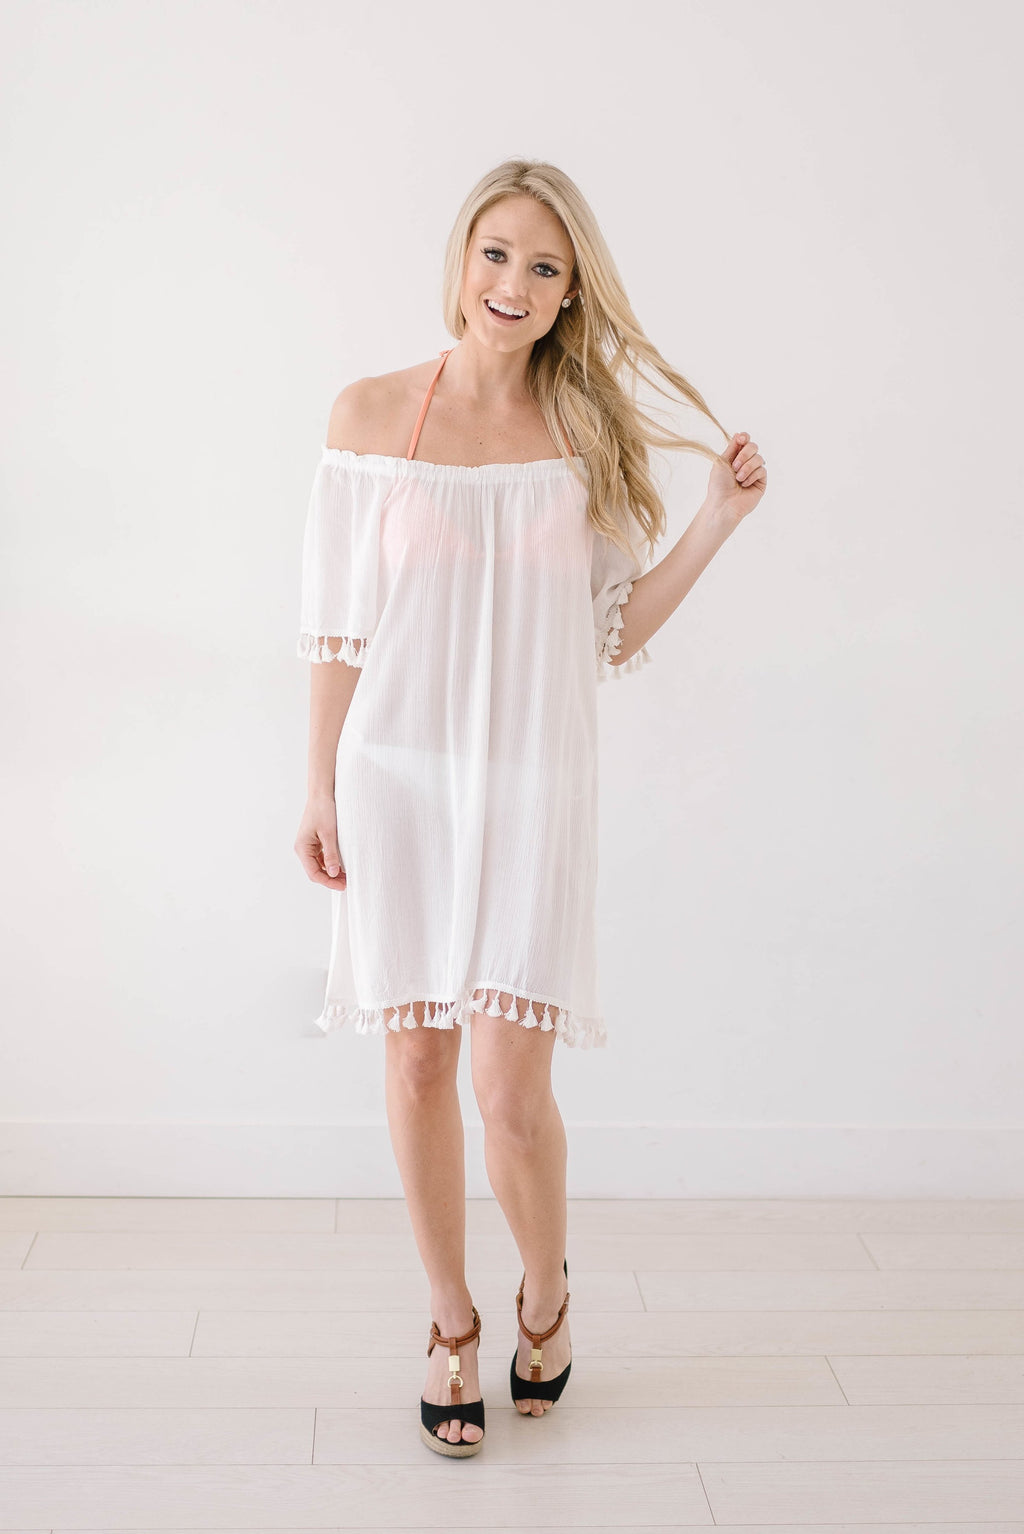 Belmar Beach Cover Up In White - Warehouse Sale